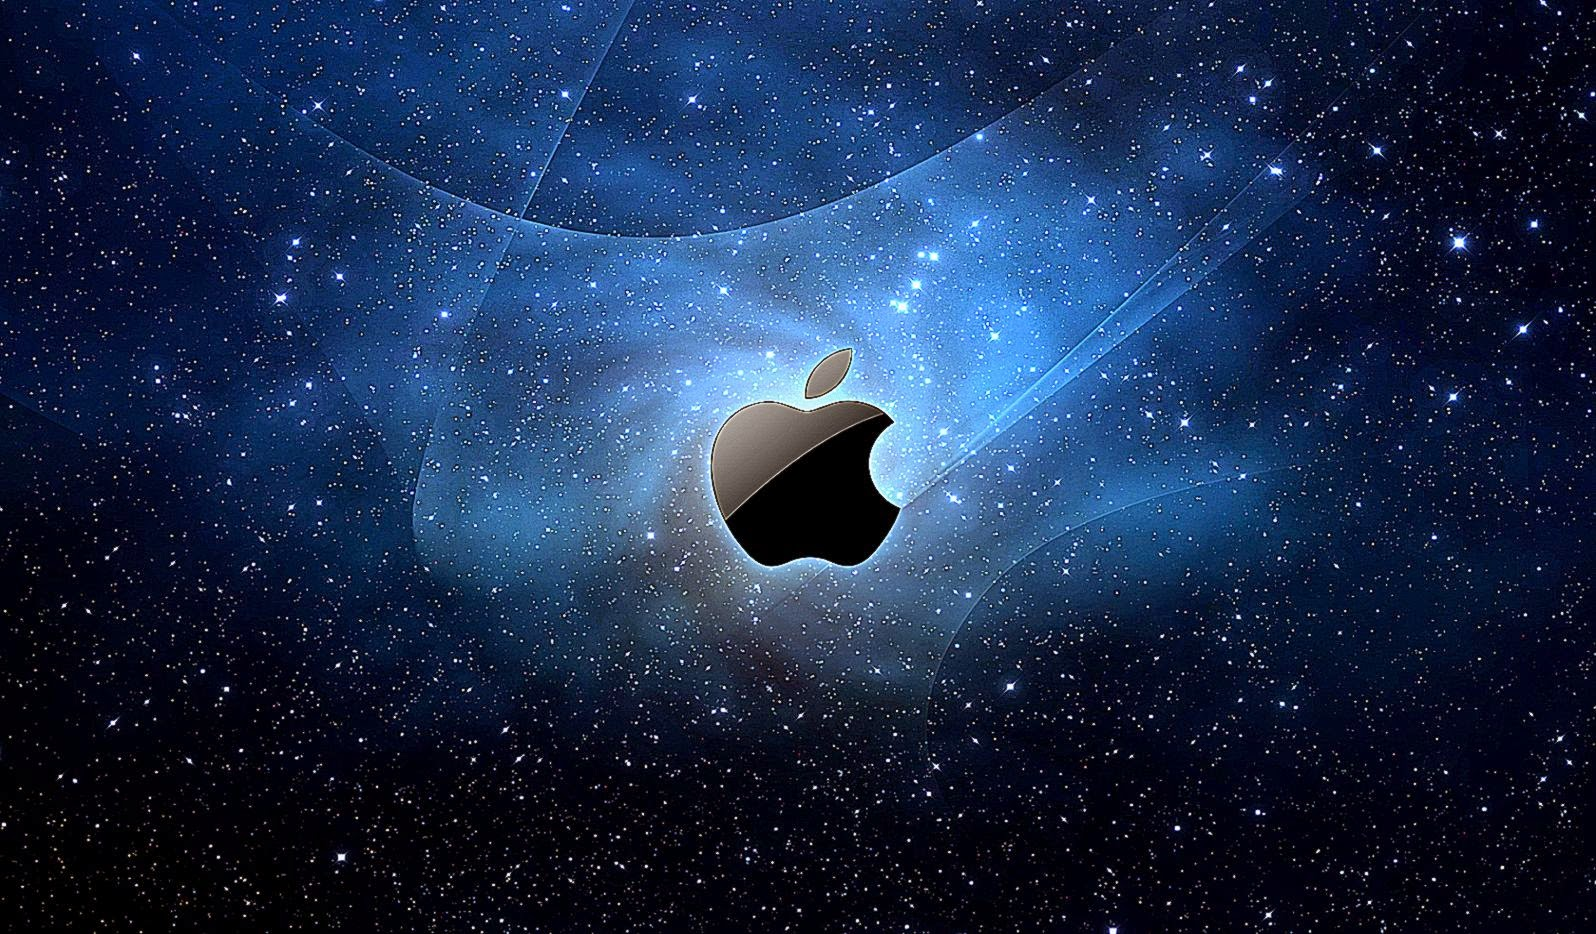 hd apple computer wallpaper | best free hd wallpaper